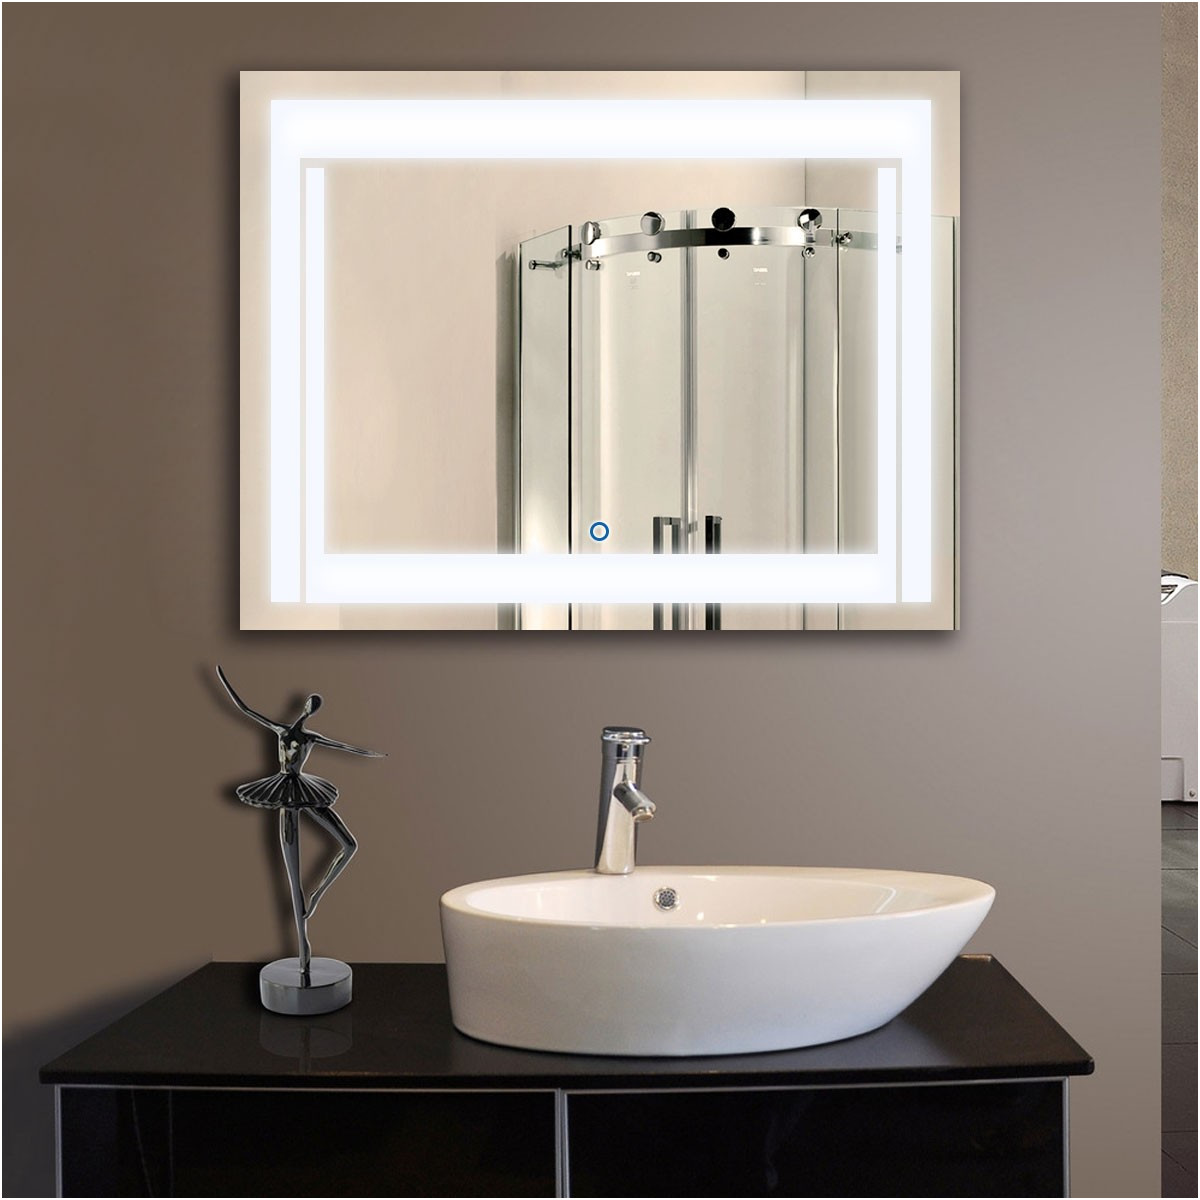 Wide Bathroom Mirrors with Lights Inspirational 36 X 28 In Horizontal Led Bathroom Silvered Mirror with touch button